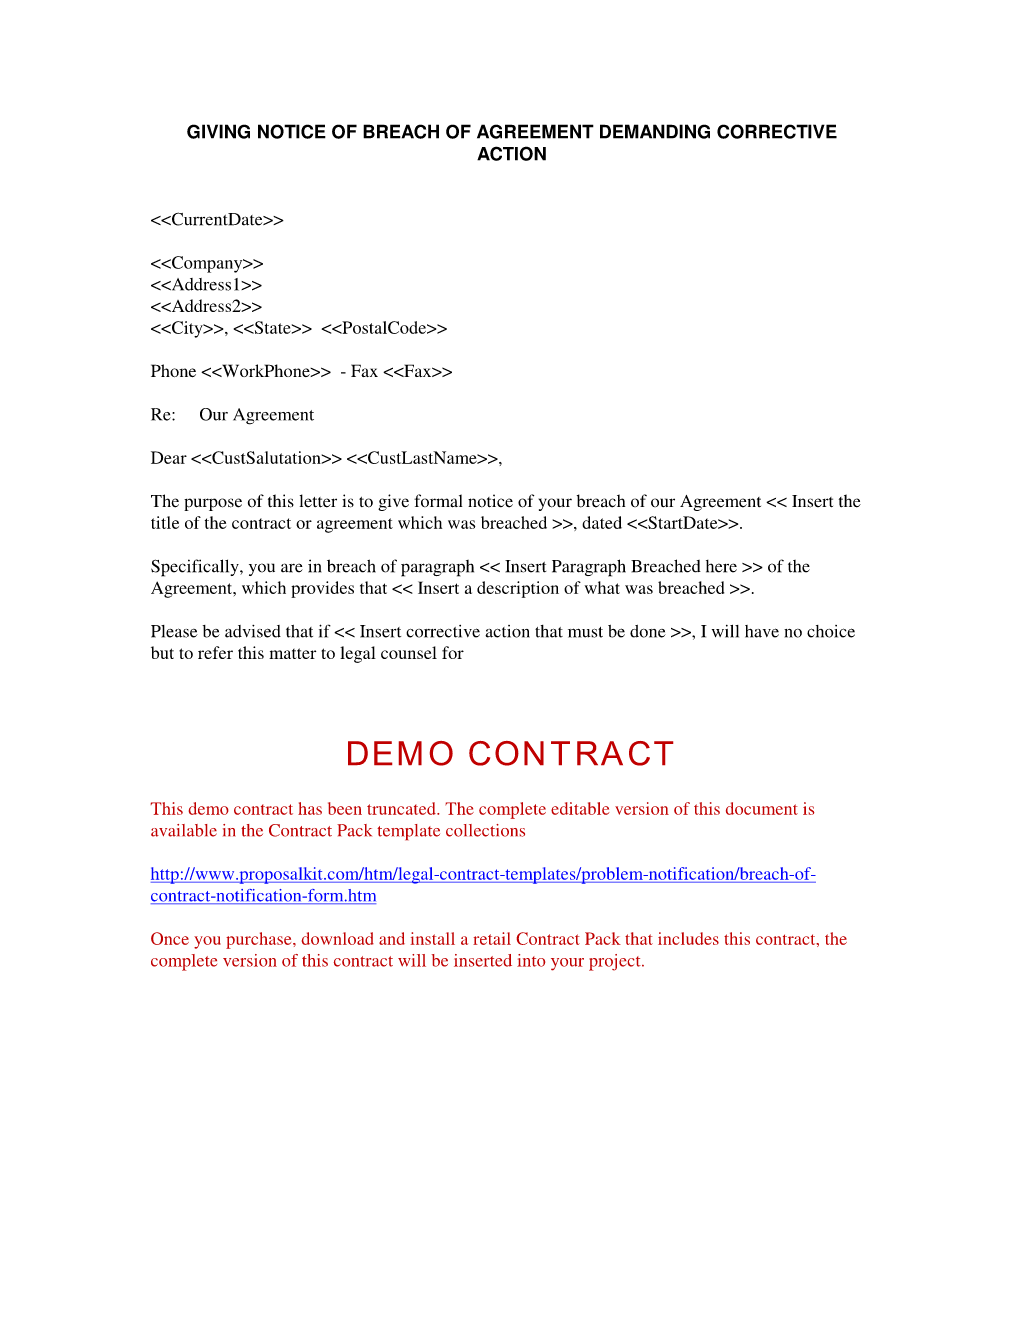 How to Write a Breach of Contract Letter